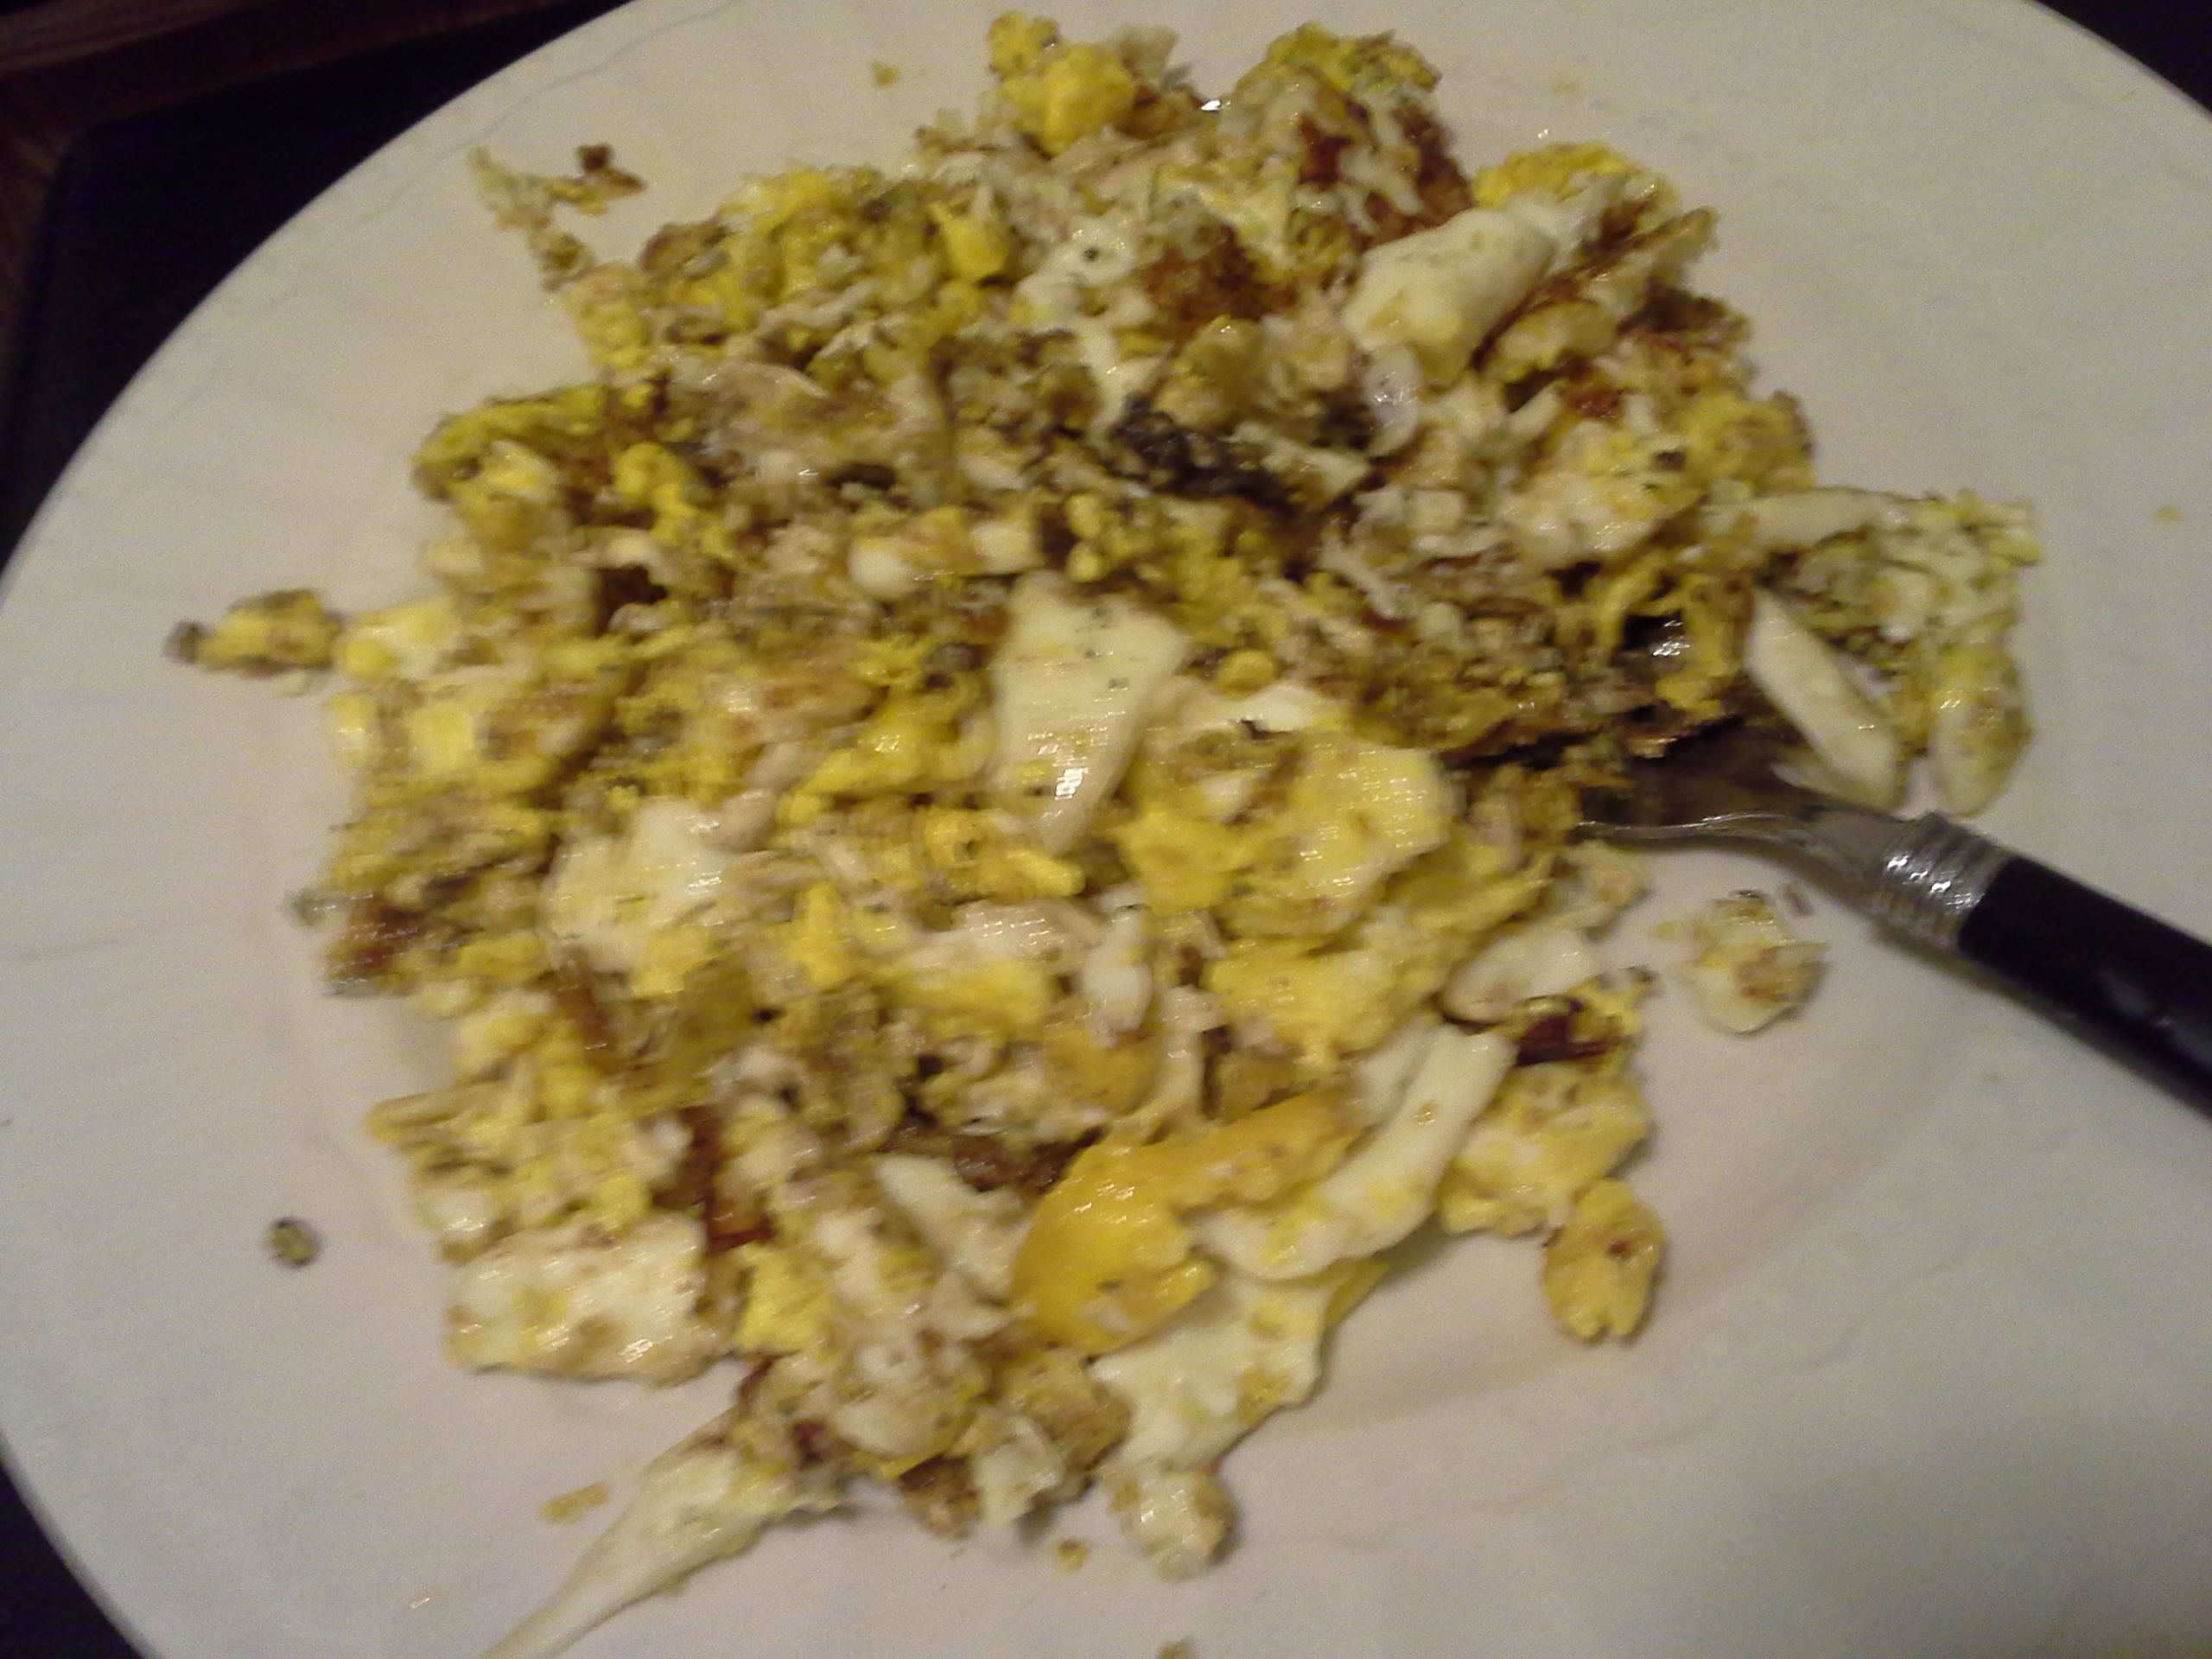 Dinner: 9:20 p.m. | 6 fried eggs, 2 Tbsp. ghee, herbs & spices